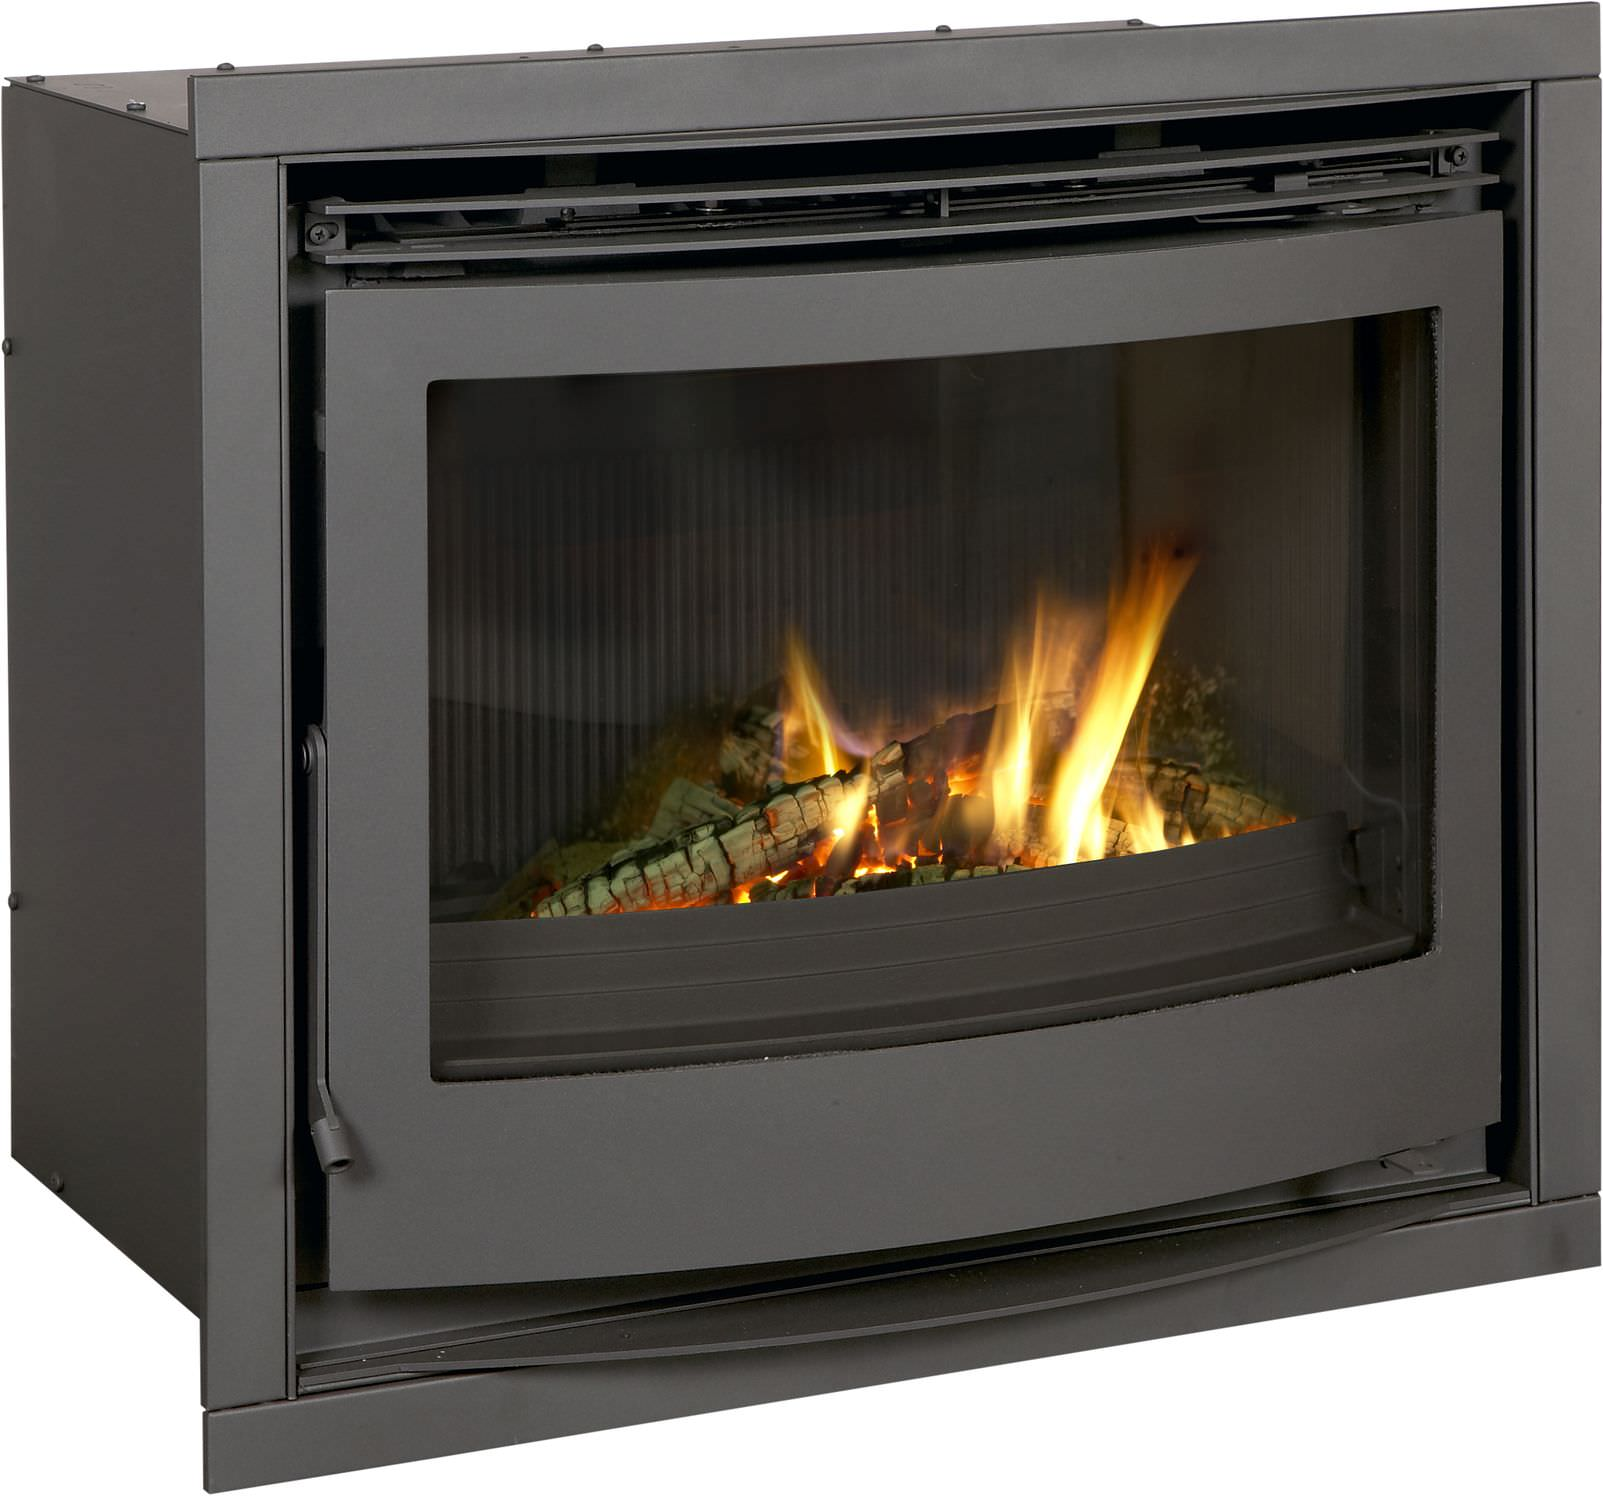 Discover all the information about the product Wood-burning fireplace insert 2520BS - DOVRE France and find where you can buy it. Contact the manufacturer directly to receive a quote.